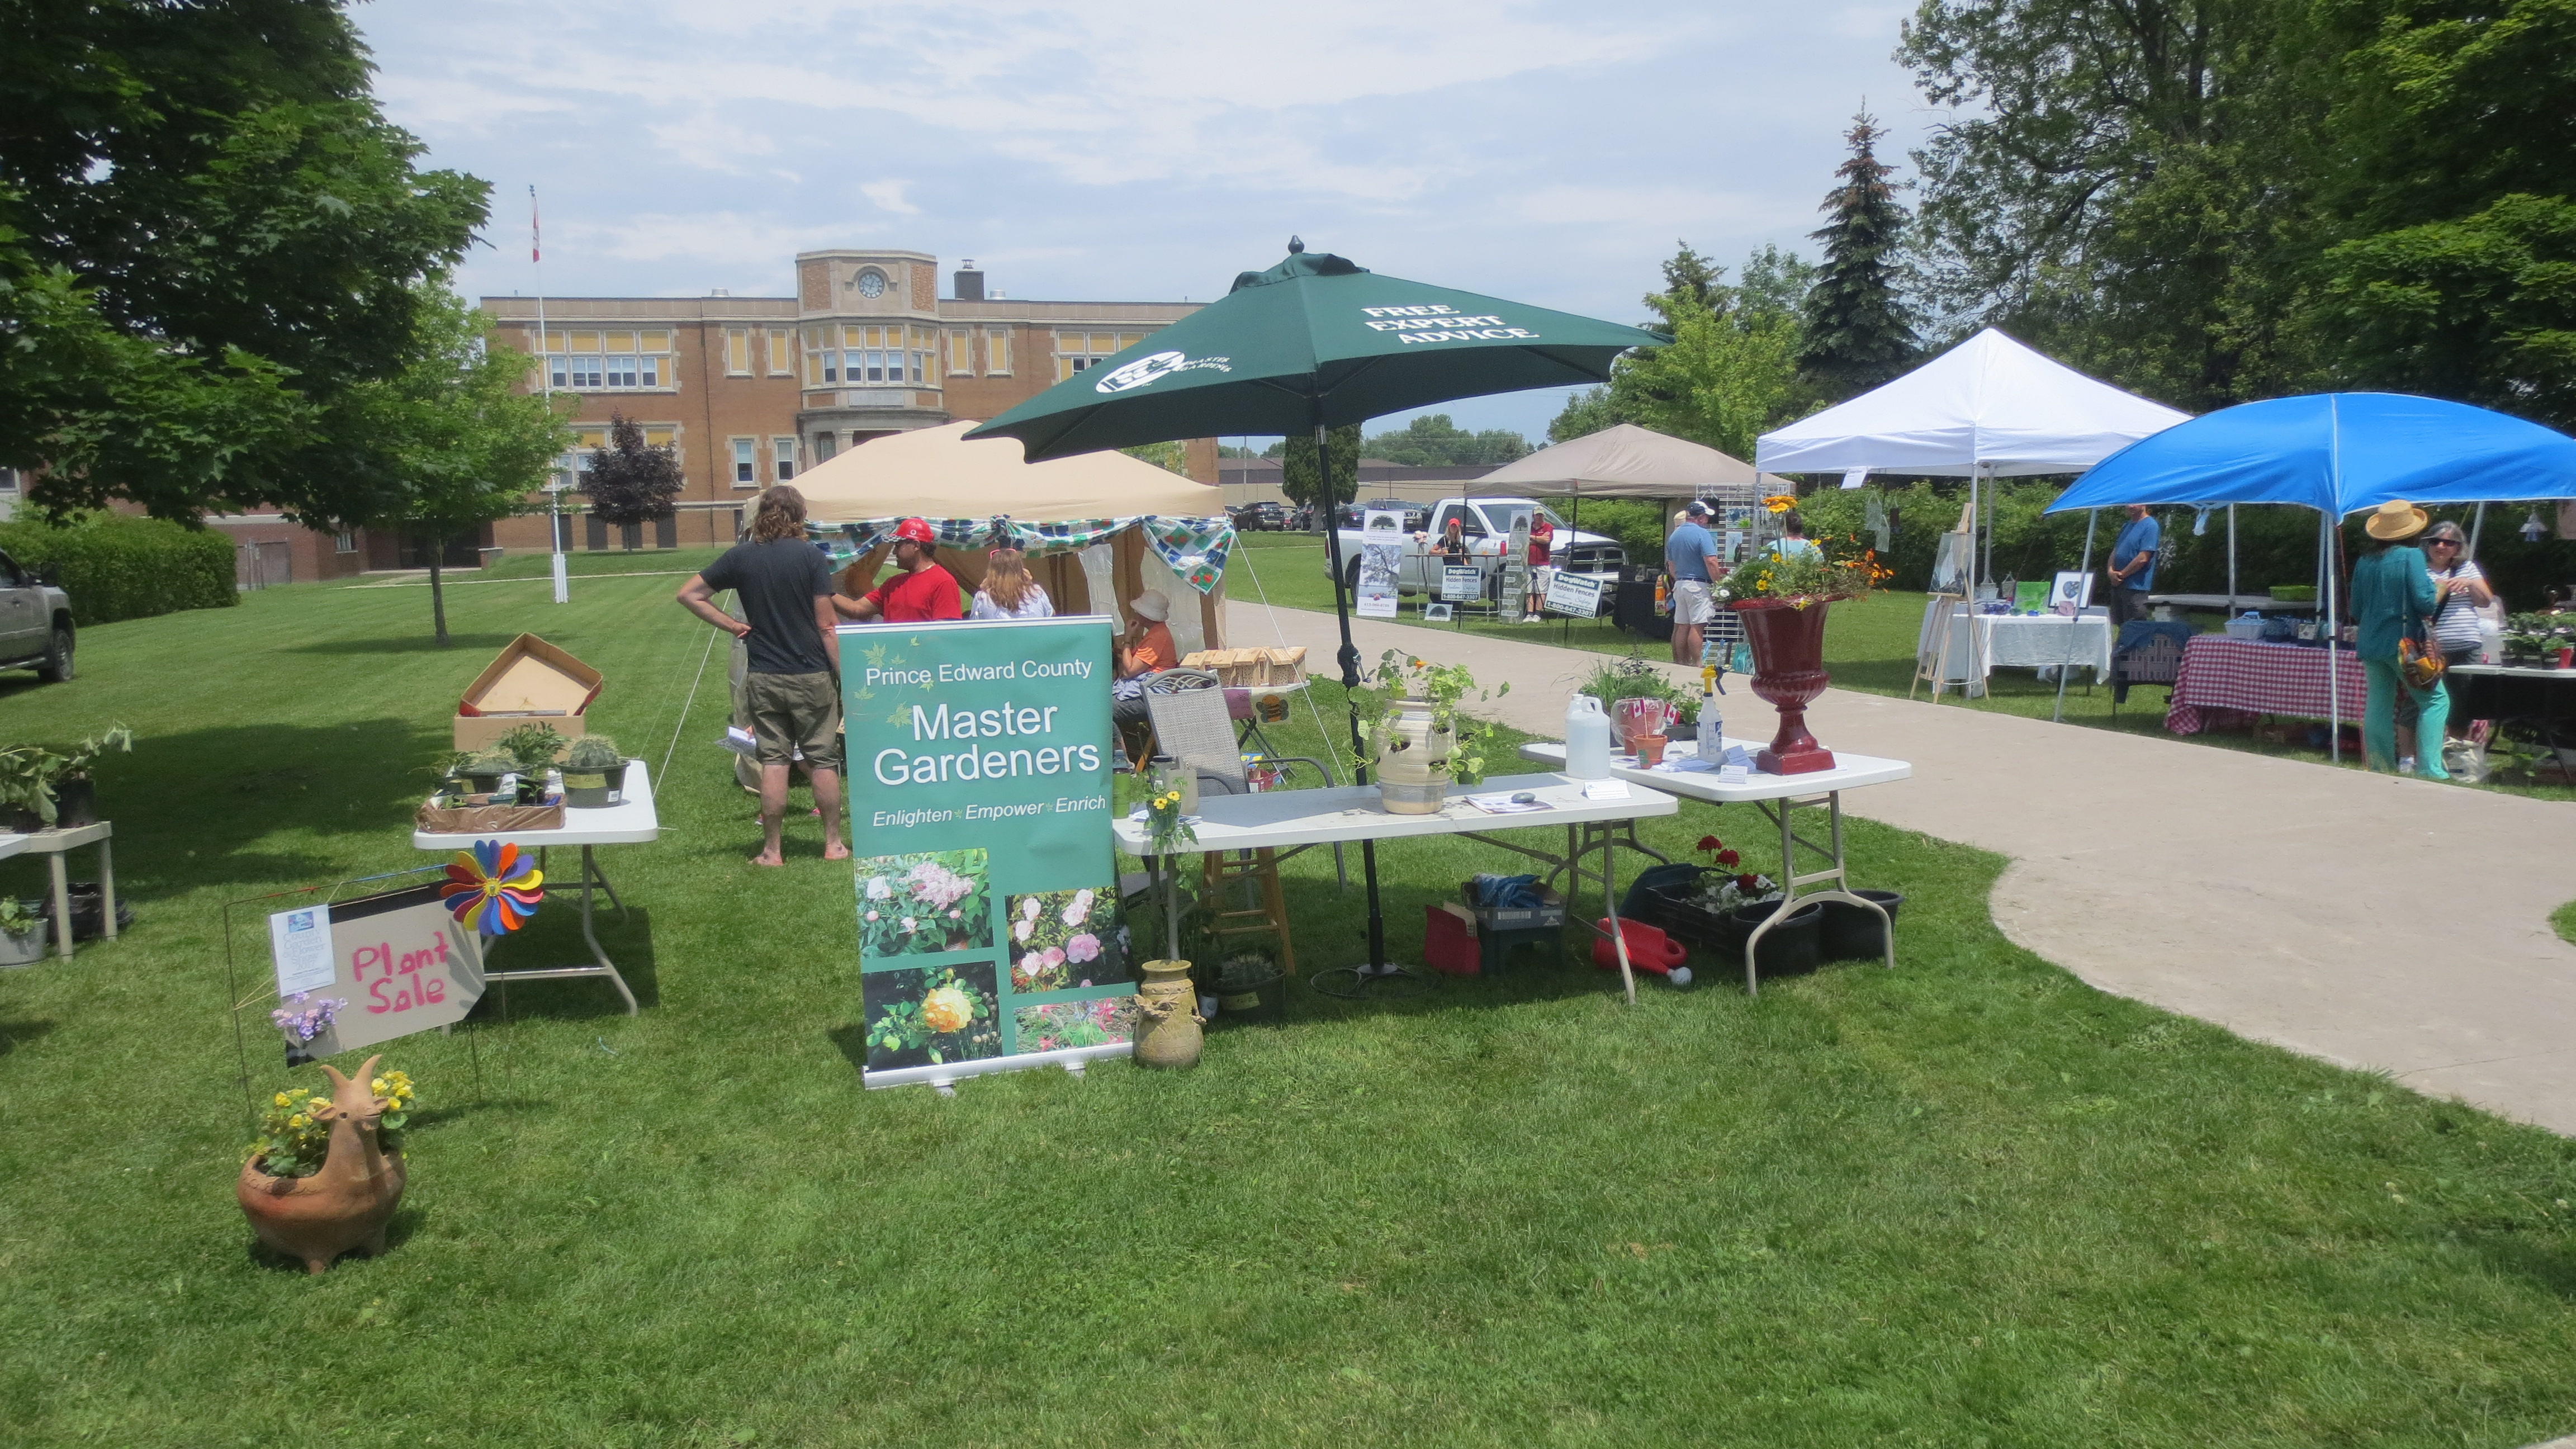 Prince Edward County Master Gardeners Come Grow With Us